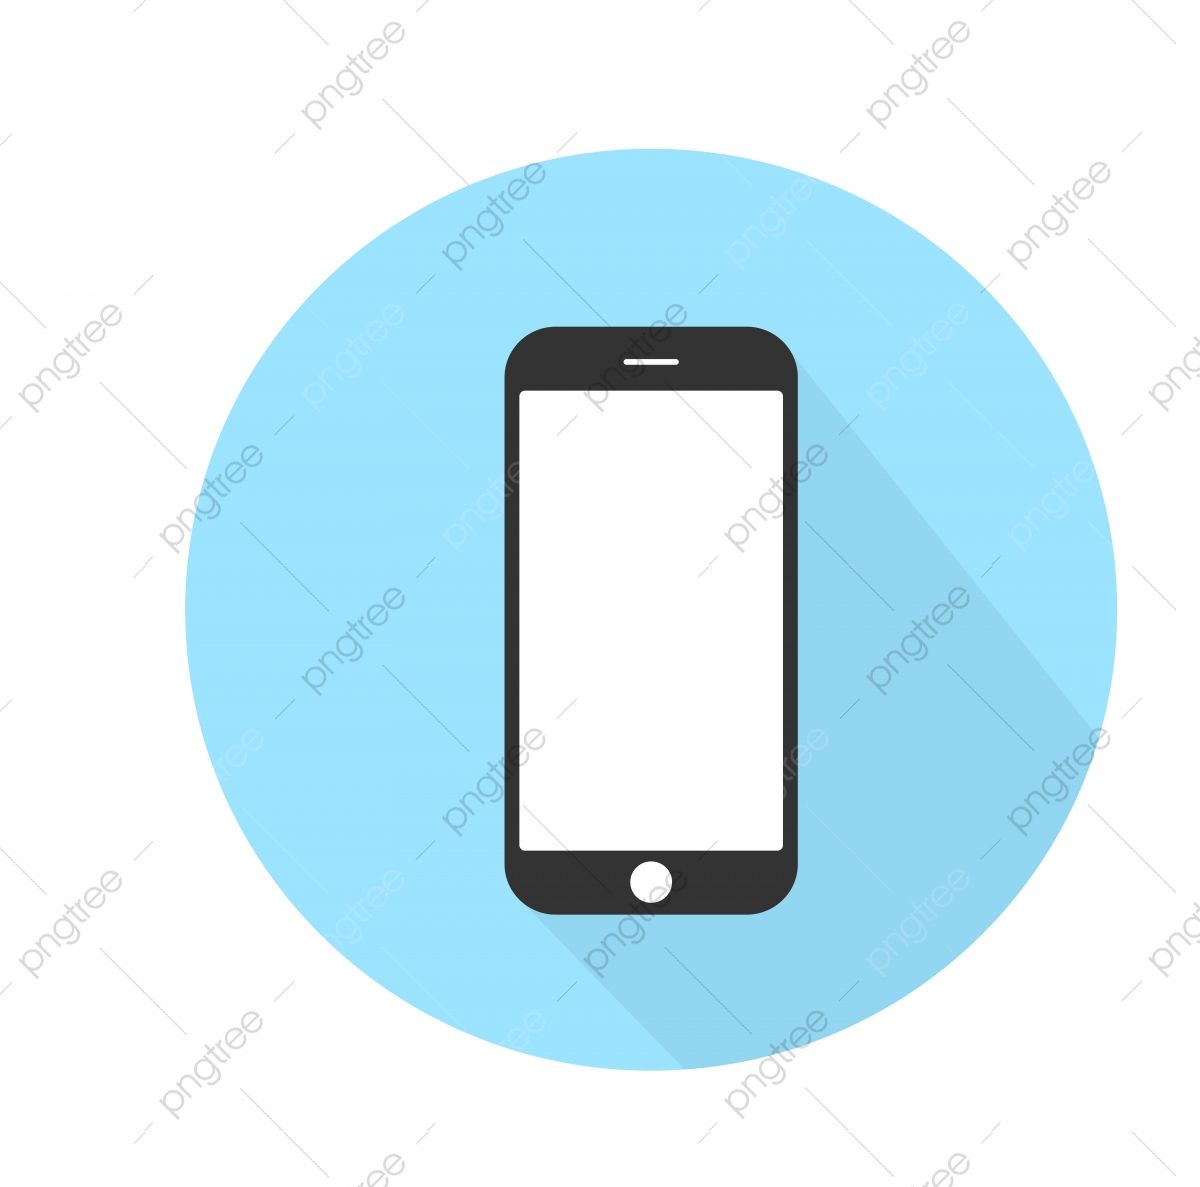 Icone De Telephone Portable Sur Un Fond Bleu Smartphone Telephone Iphone Sur Illustration Vectorielle Fond Blanc Telephone Iphone Illustration Vectorielle Iphone